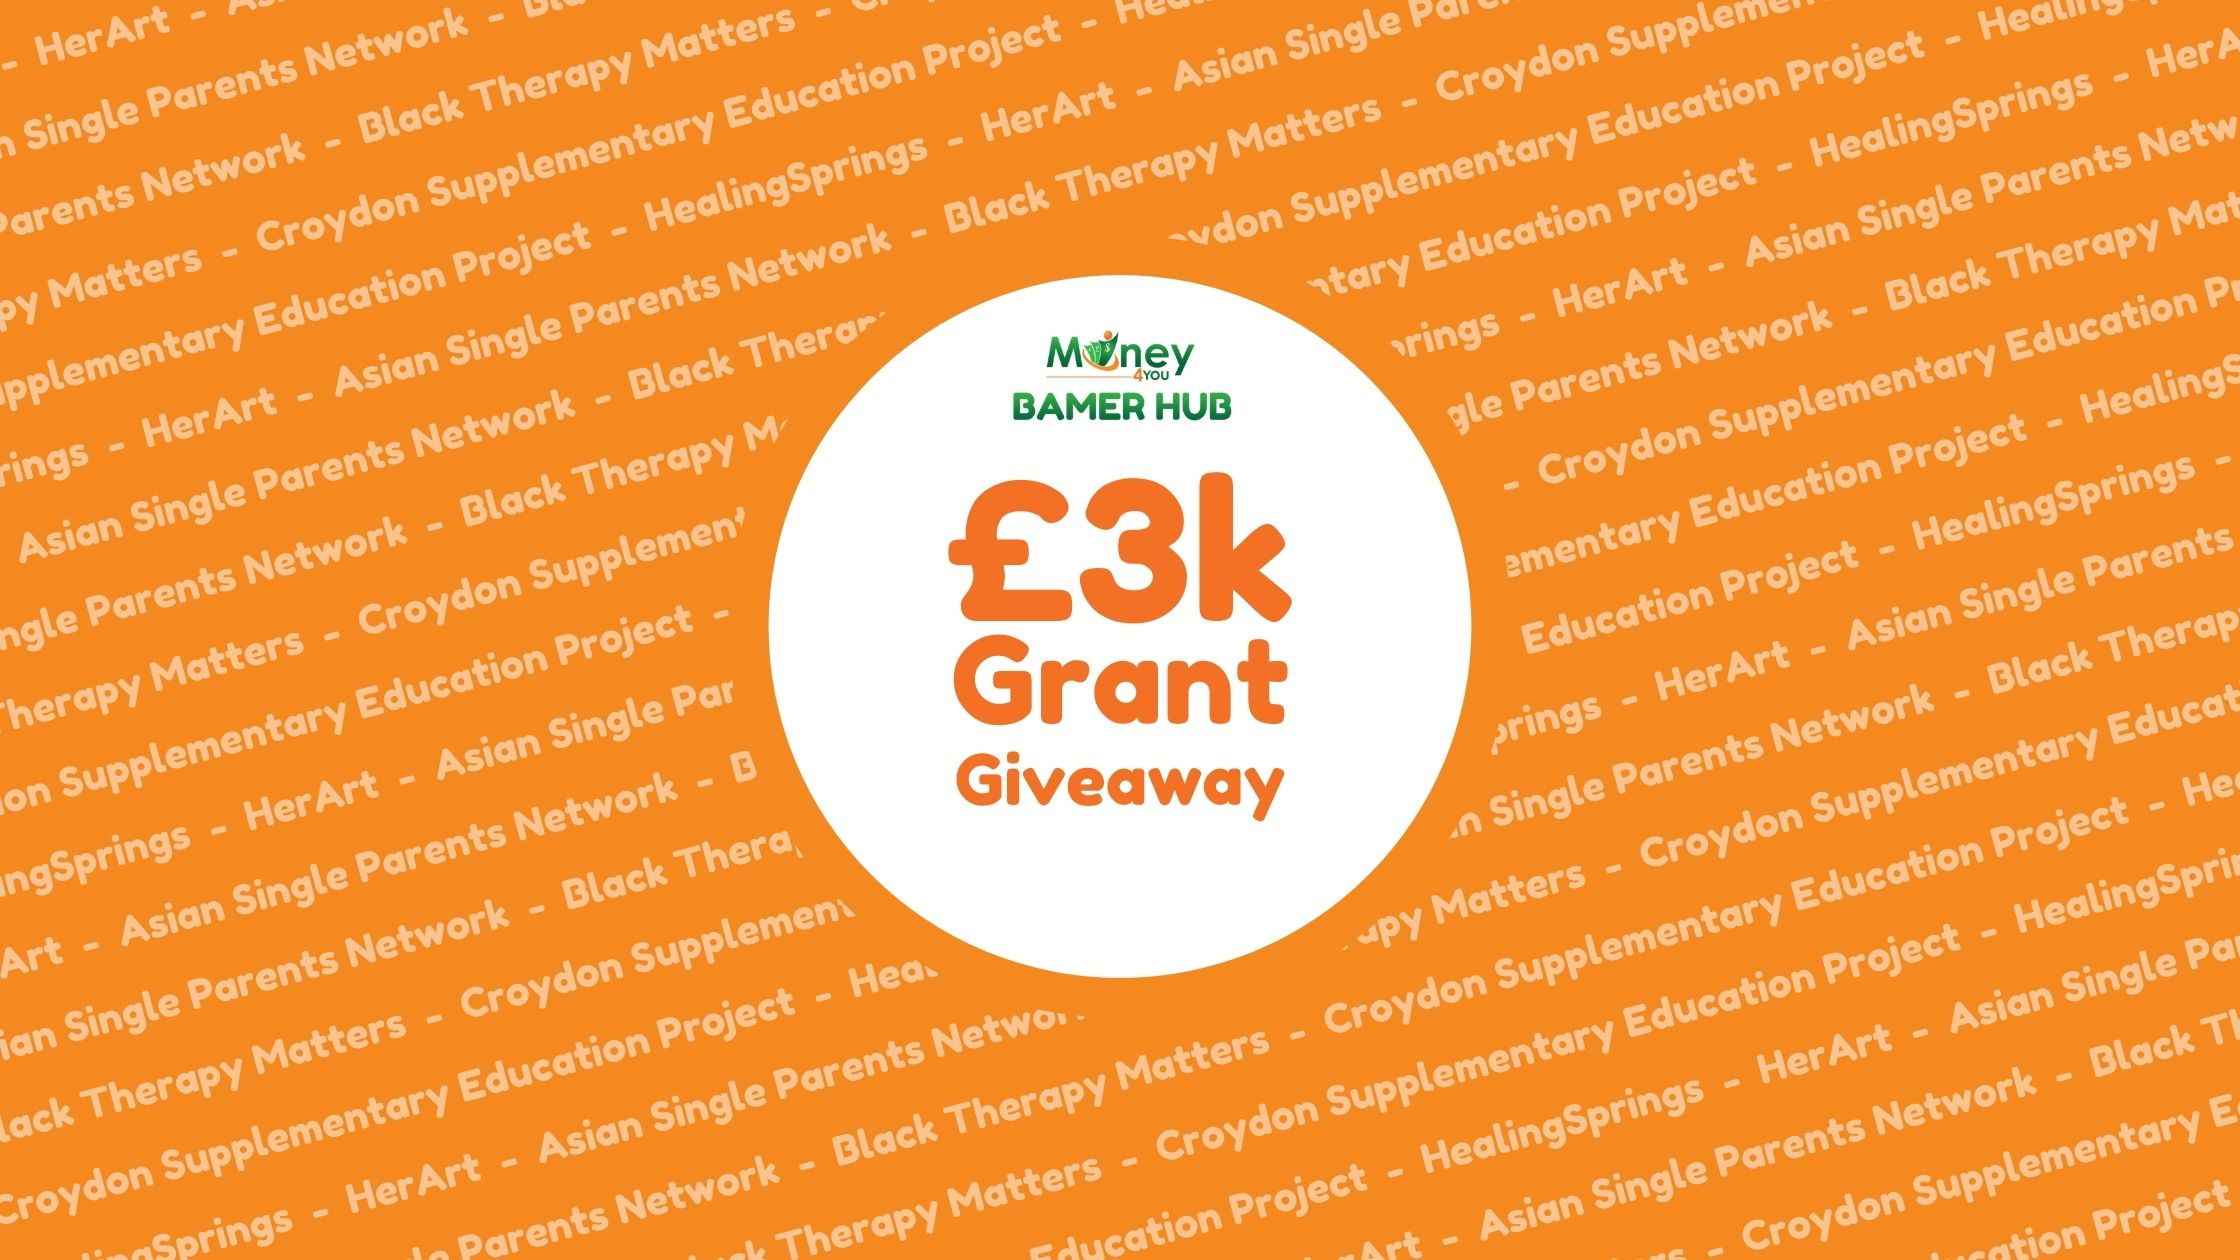 £3K Grant Giveaway